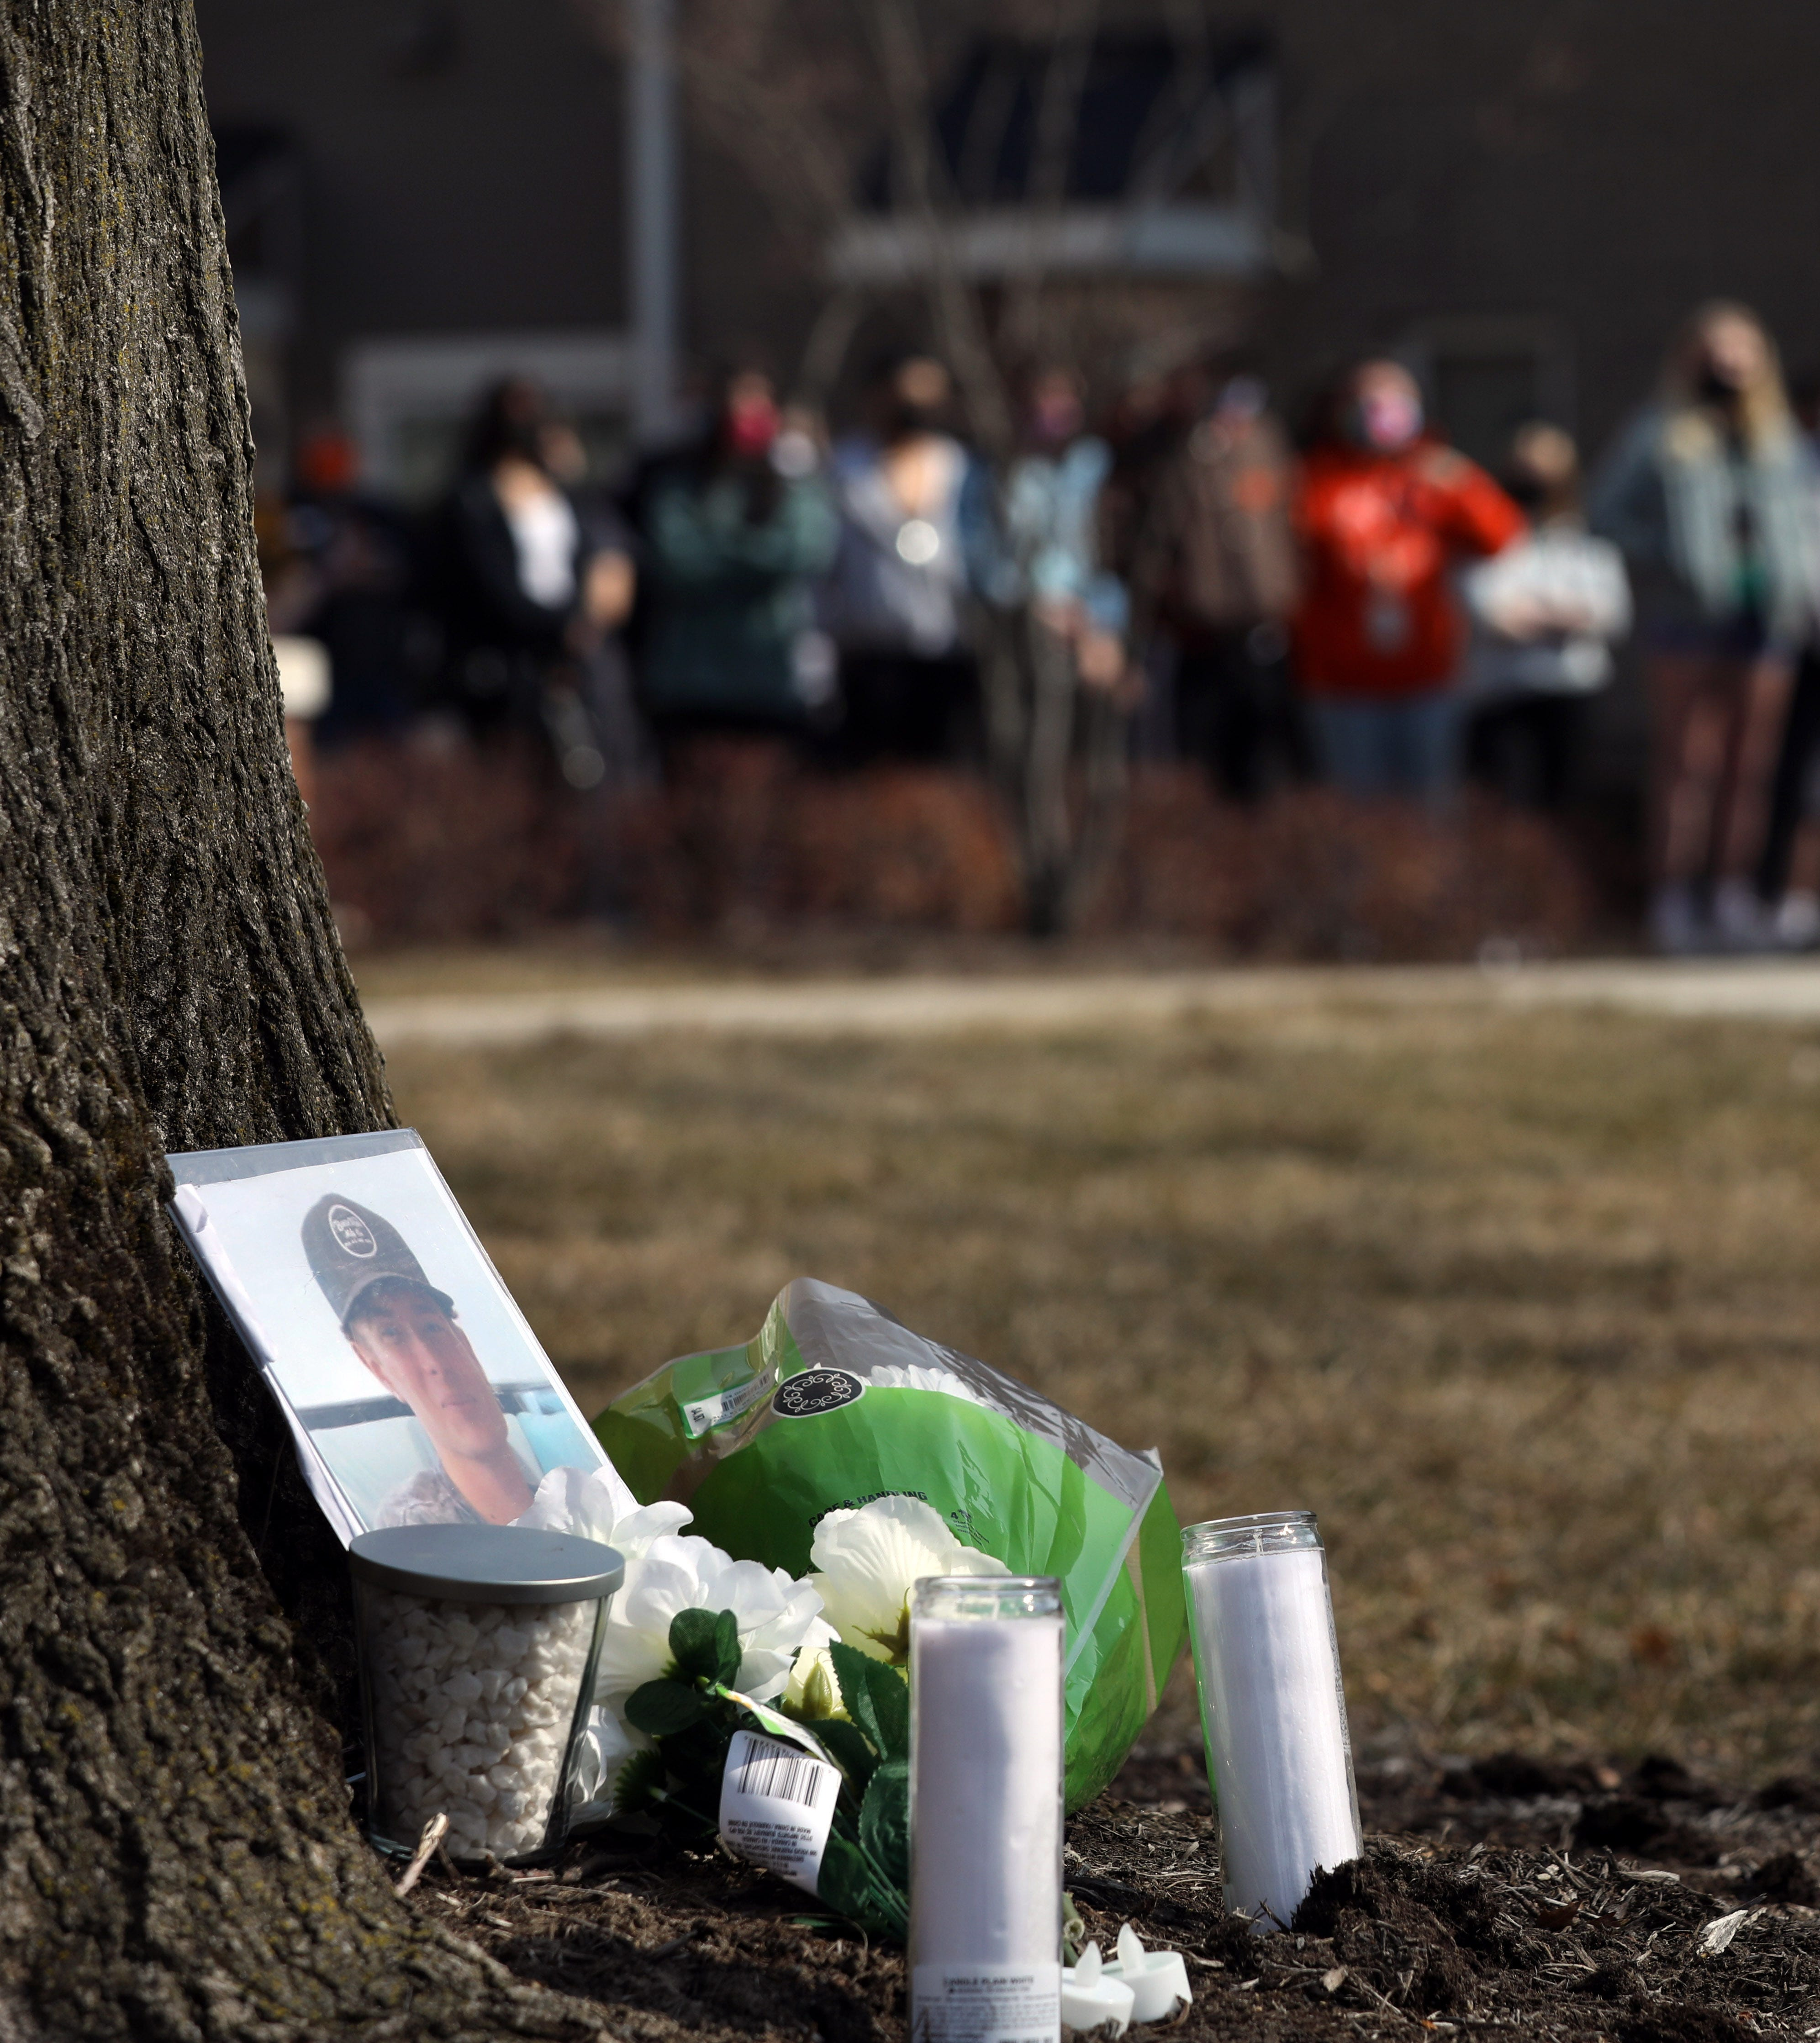 Eight students indicted in fraternity hazing death at Bowling Green State University